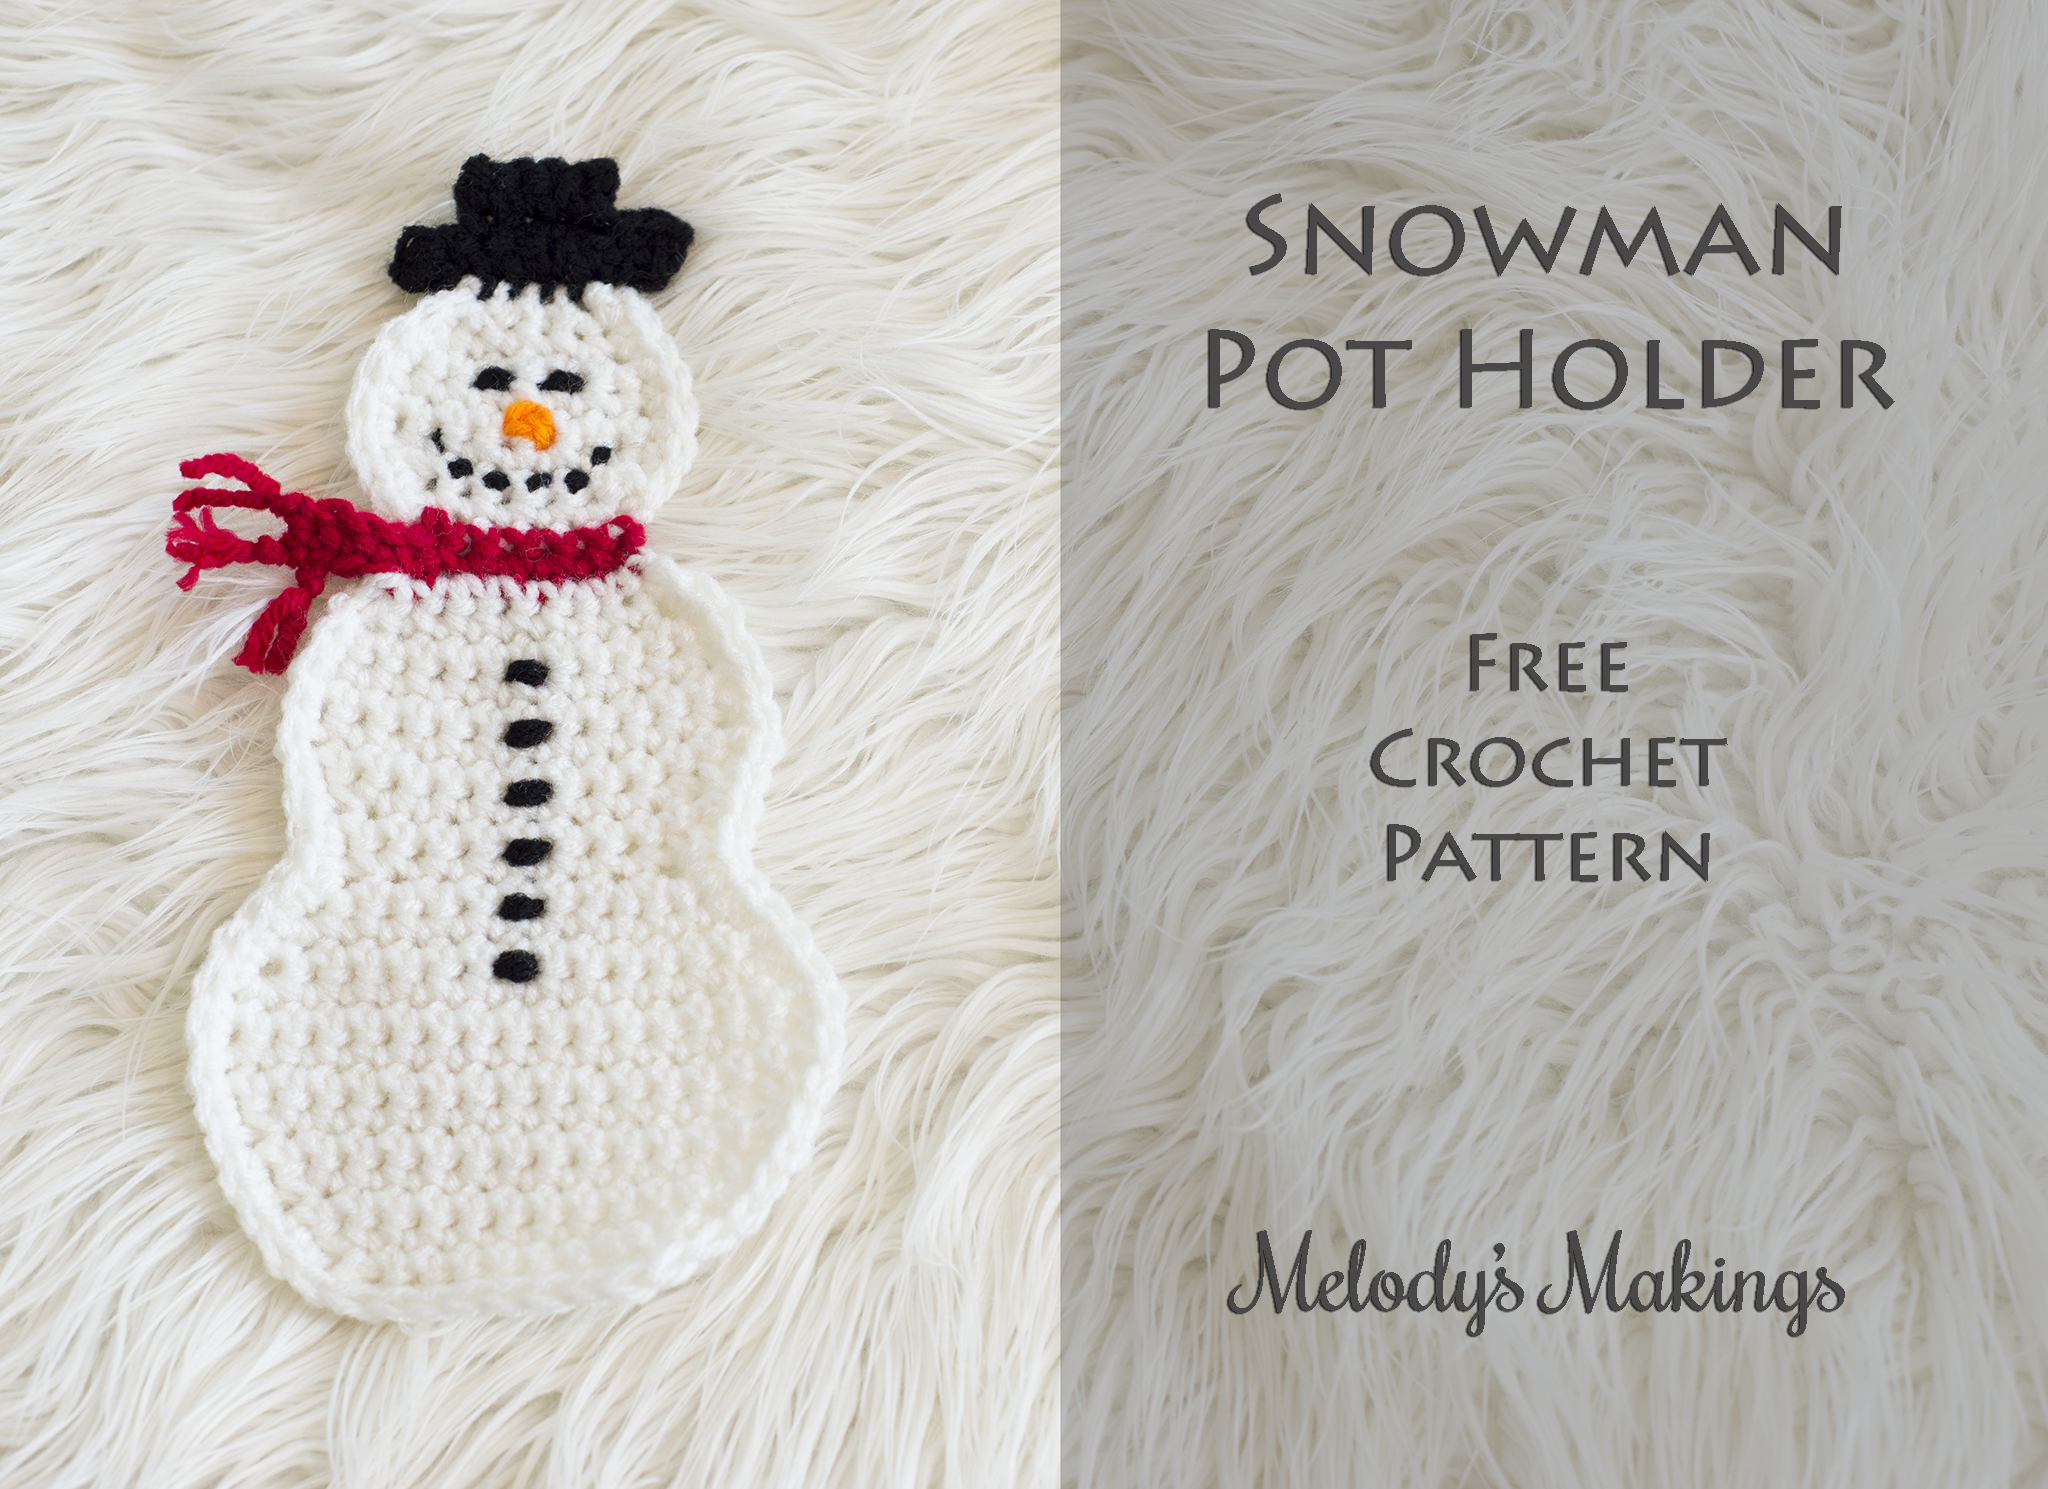 Snowman Pot Holder Free Pattern! (Knit & Crochet) | Melody\'s Makings